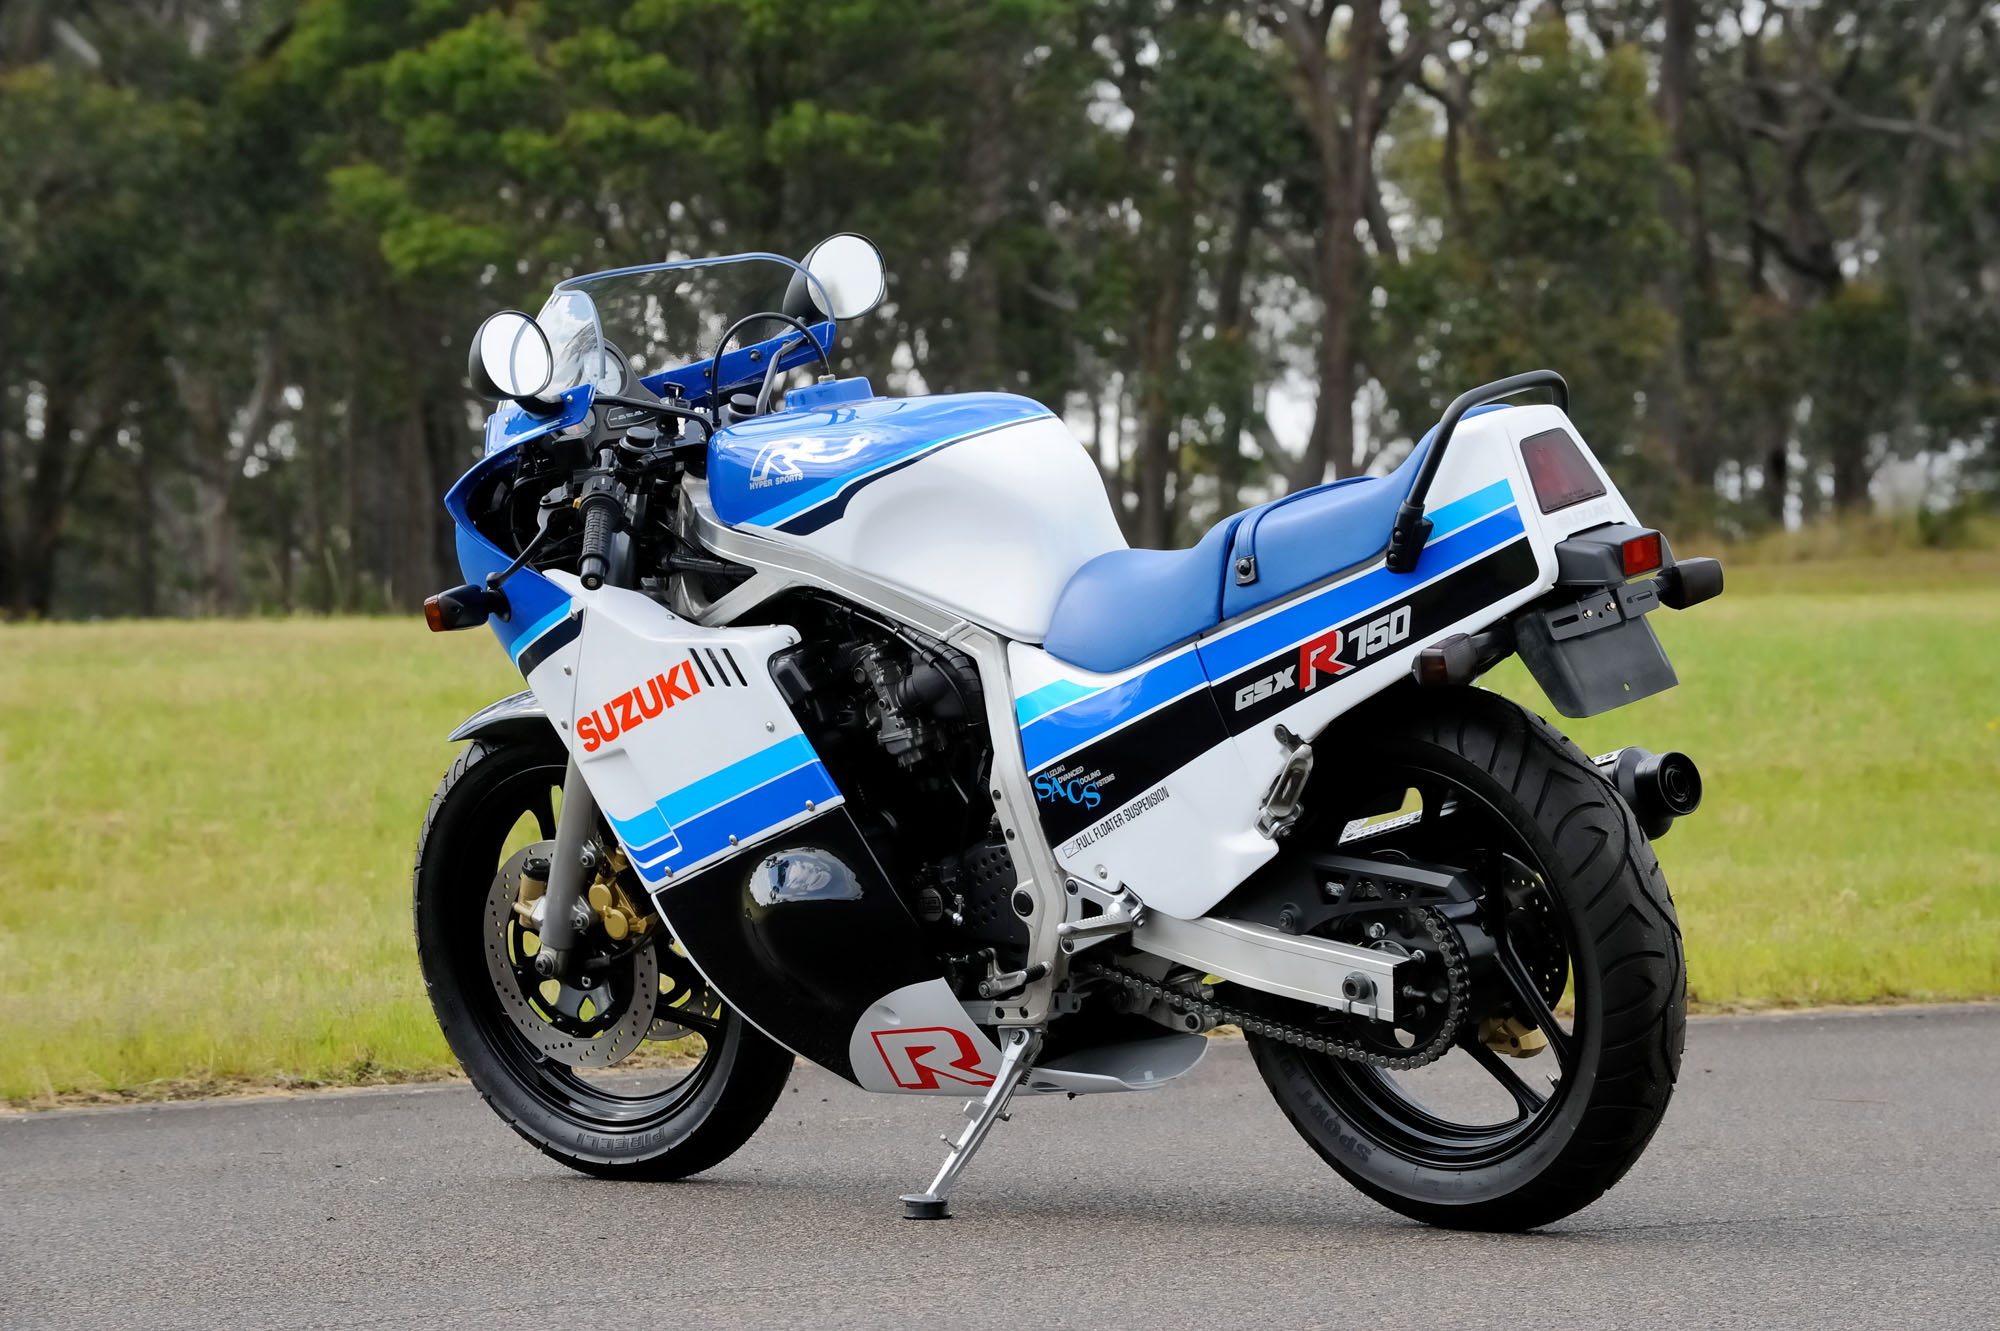 review suzuki gsx r750 old vs new bike review. Black Bedroom Furniture Sets. Home Design Ideas